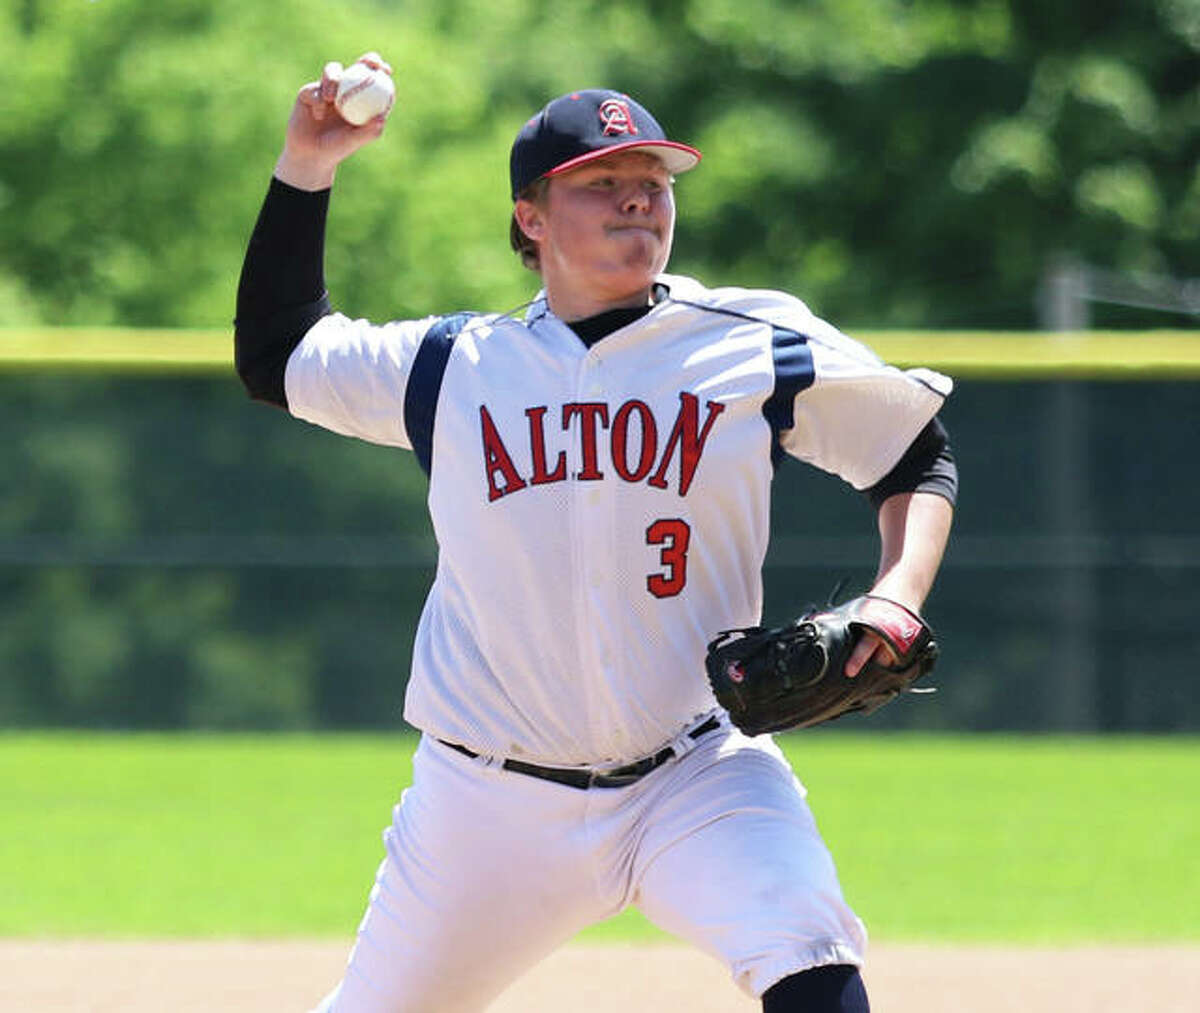 One year after making this pitch for Alton Legion in 2020, Adam Stilts was pitching for the Alton River Dragons in a Prospect League game on Saturday night in Alton and threw five innings for the win in a 20-1 victory over the Cape Catfish at Hopkins Field.